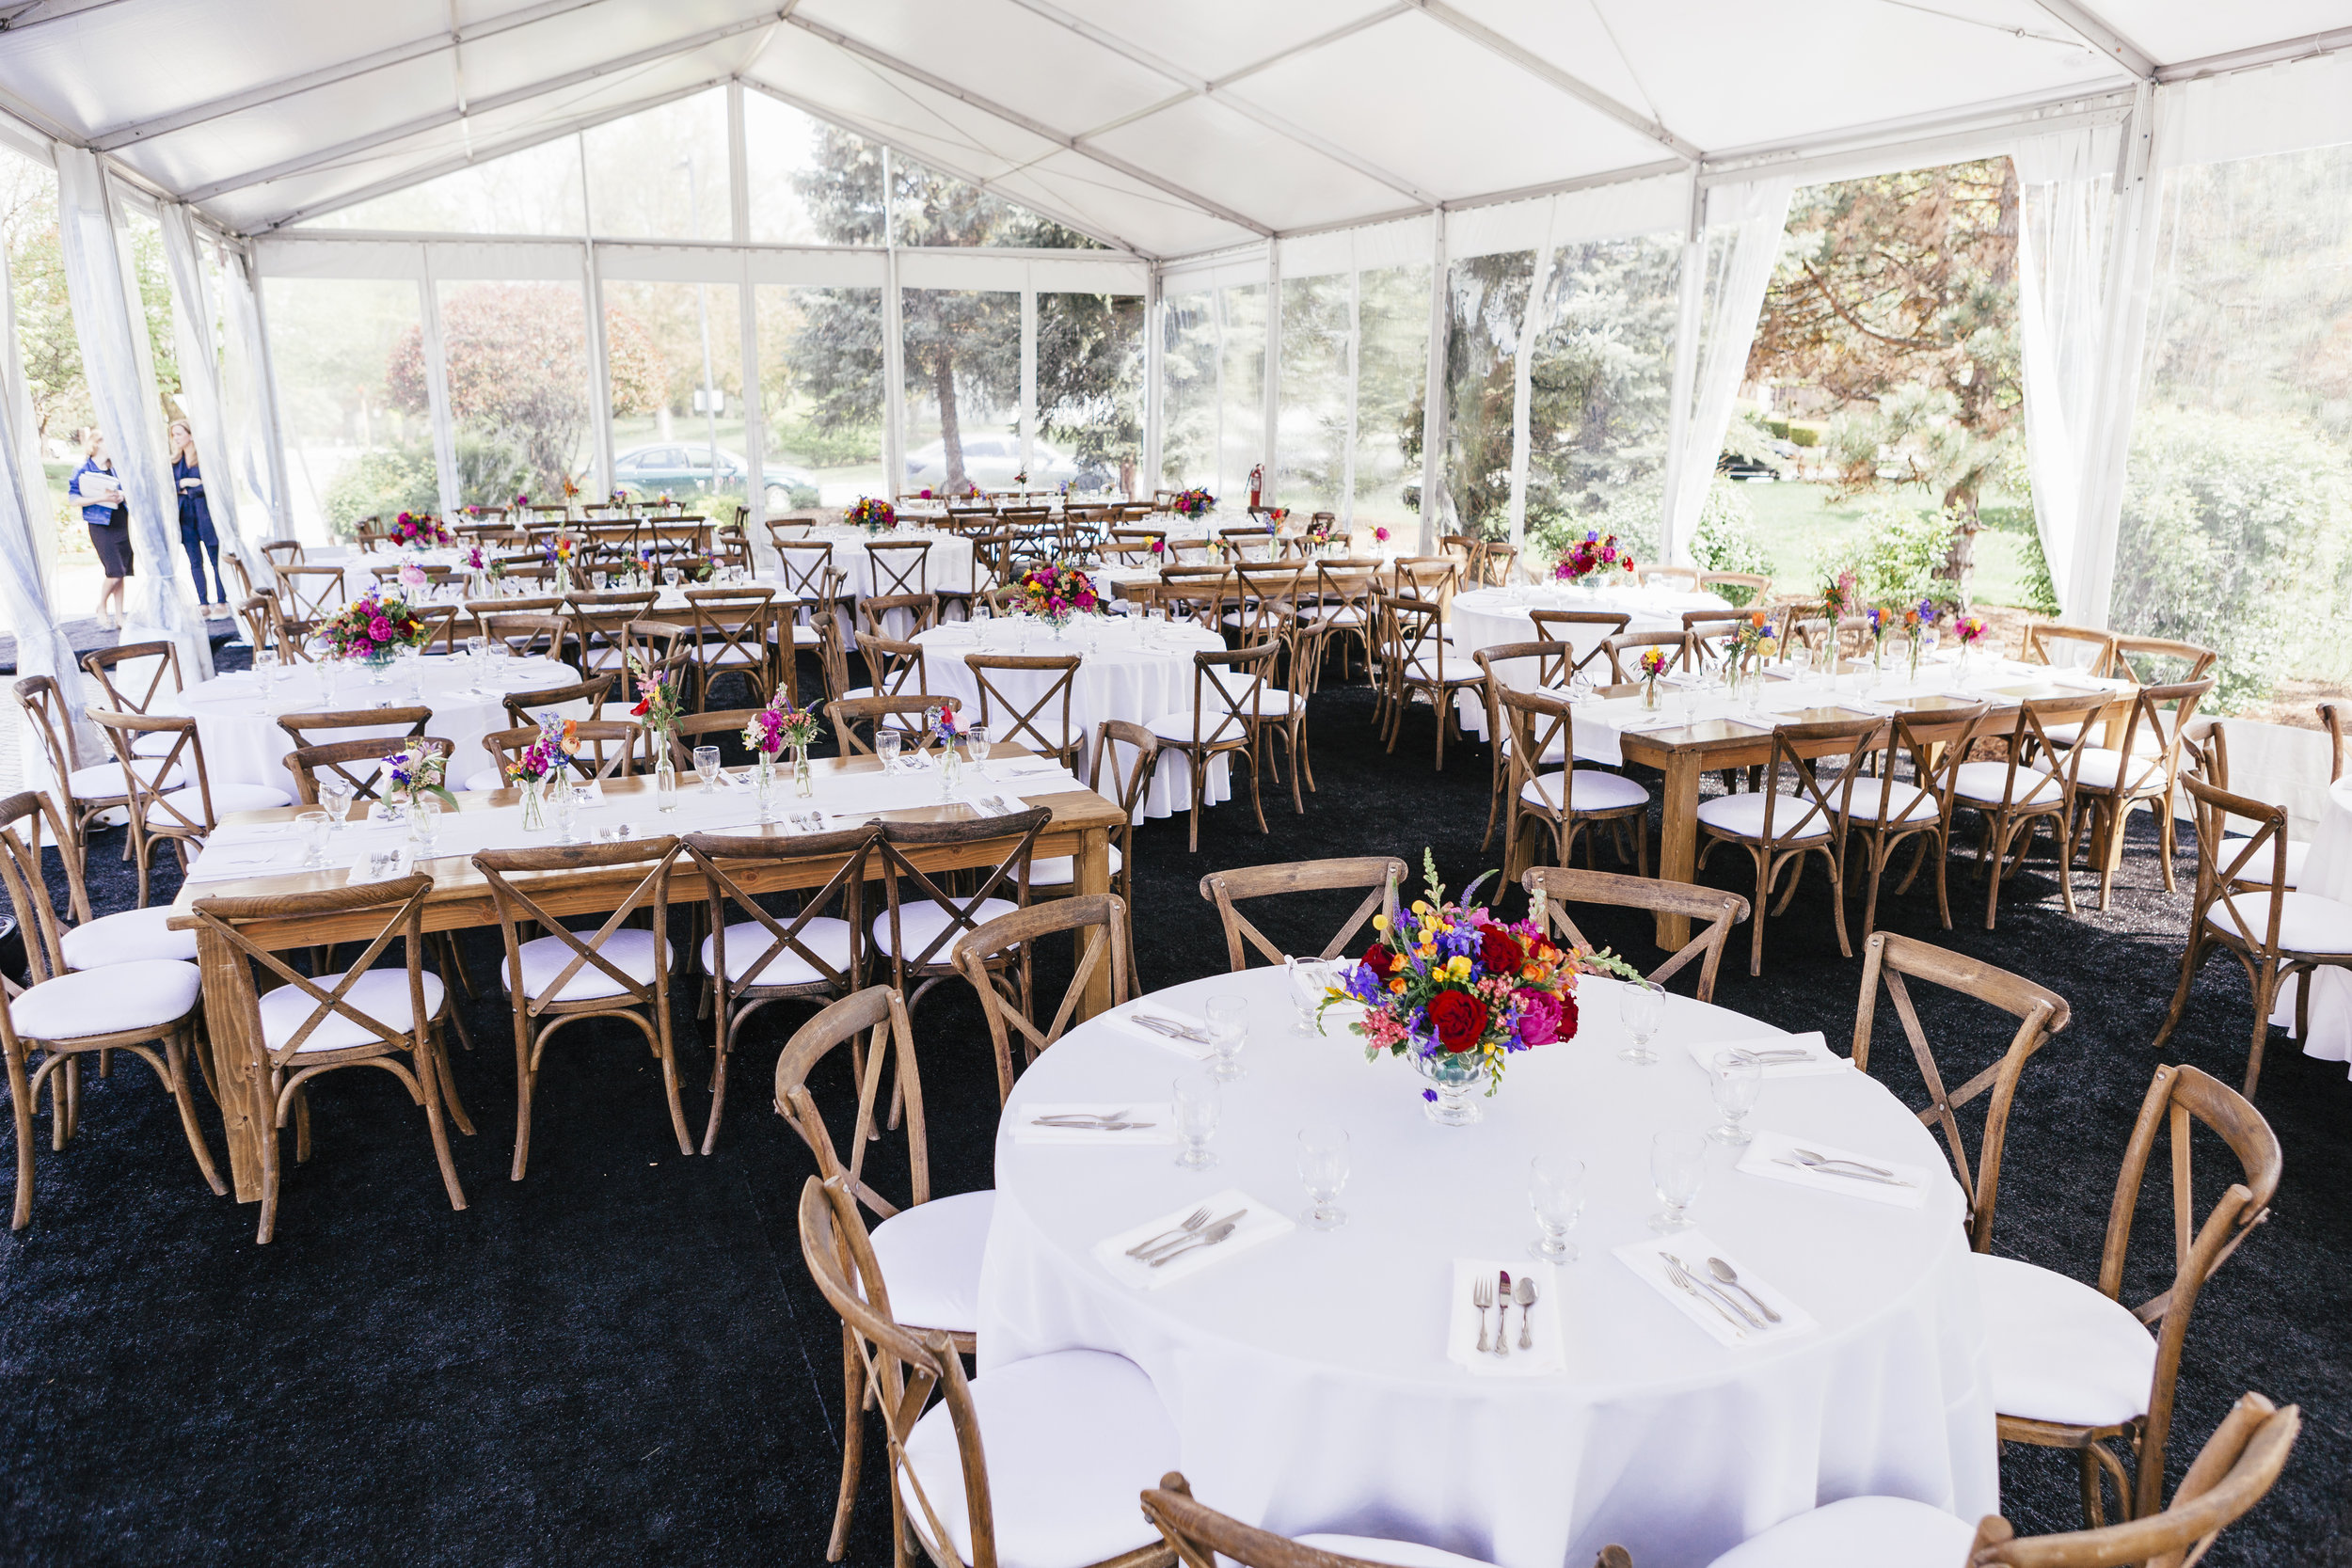 Private Residence Wedding  Tent Wedding Reception  Planning by Wrap It Up Parties